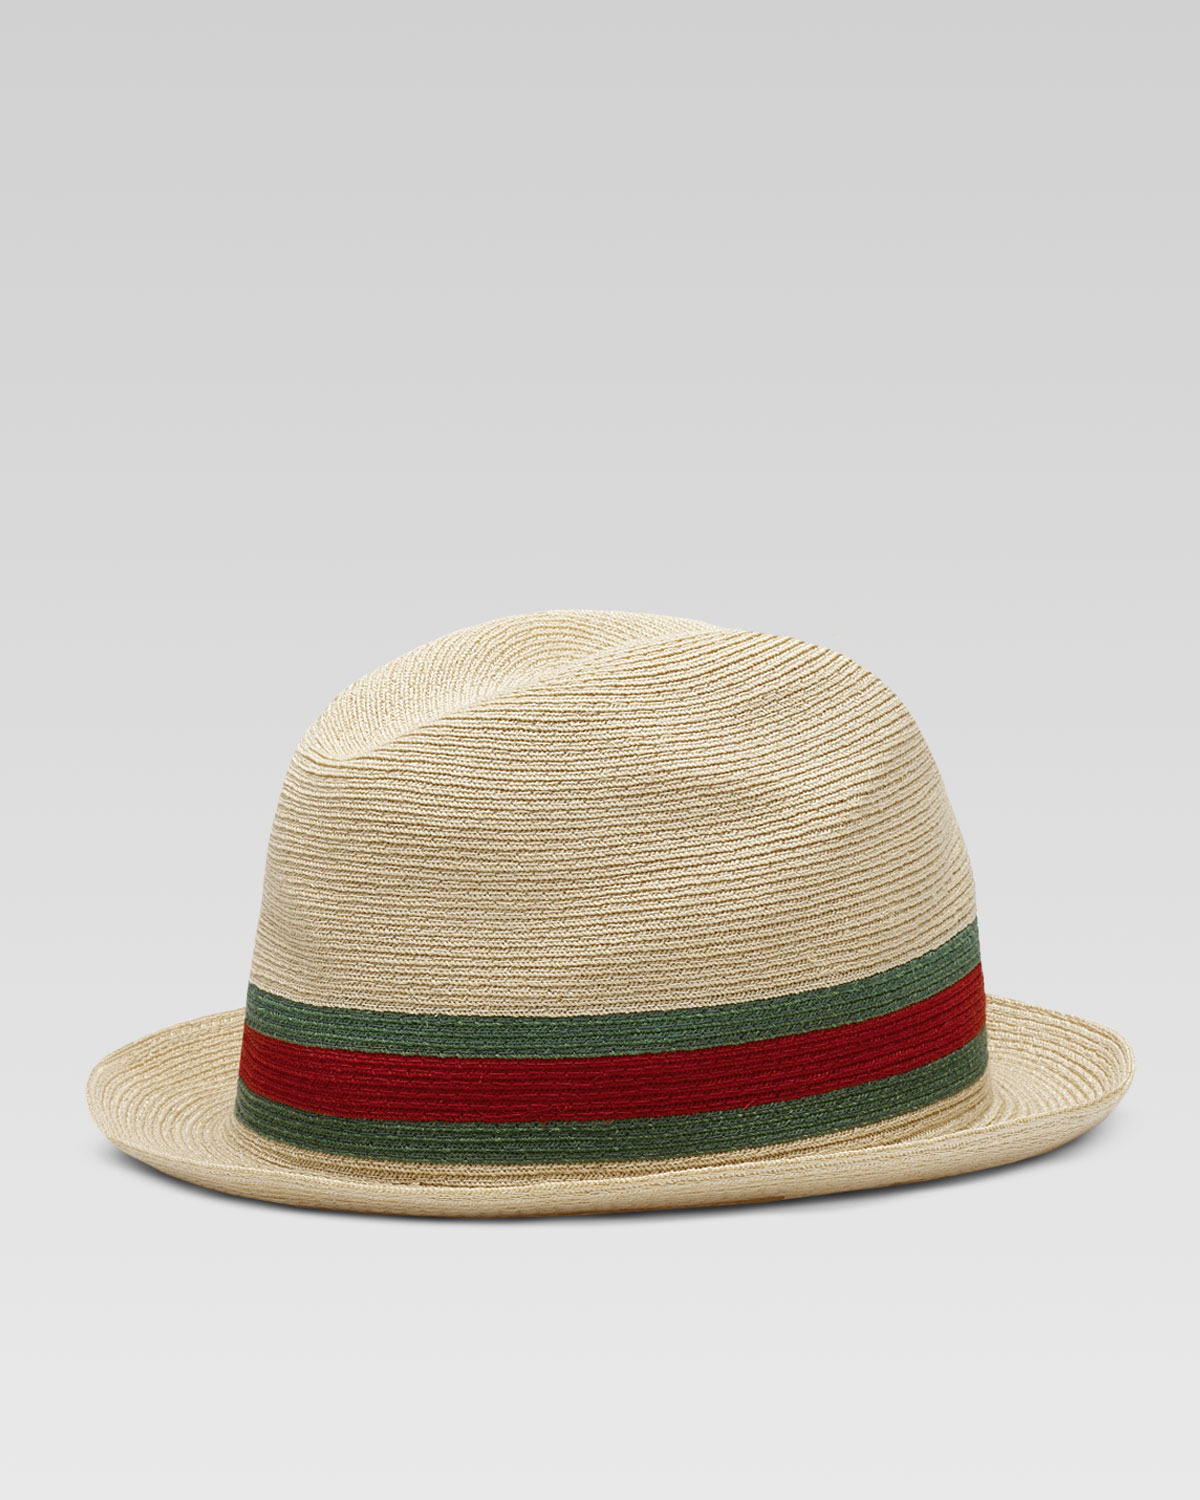 ... Lyst - Gucci Fedora Straw Hat in Natural for Men promo code 5df34 dc854  ... 0c303ad0a7a2